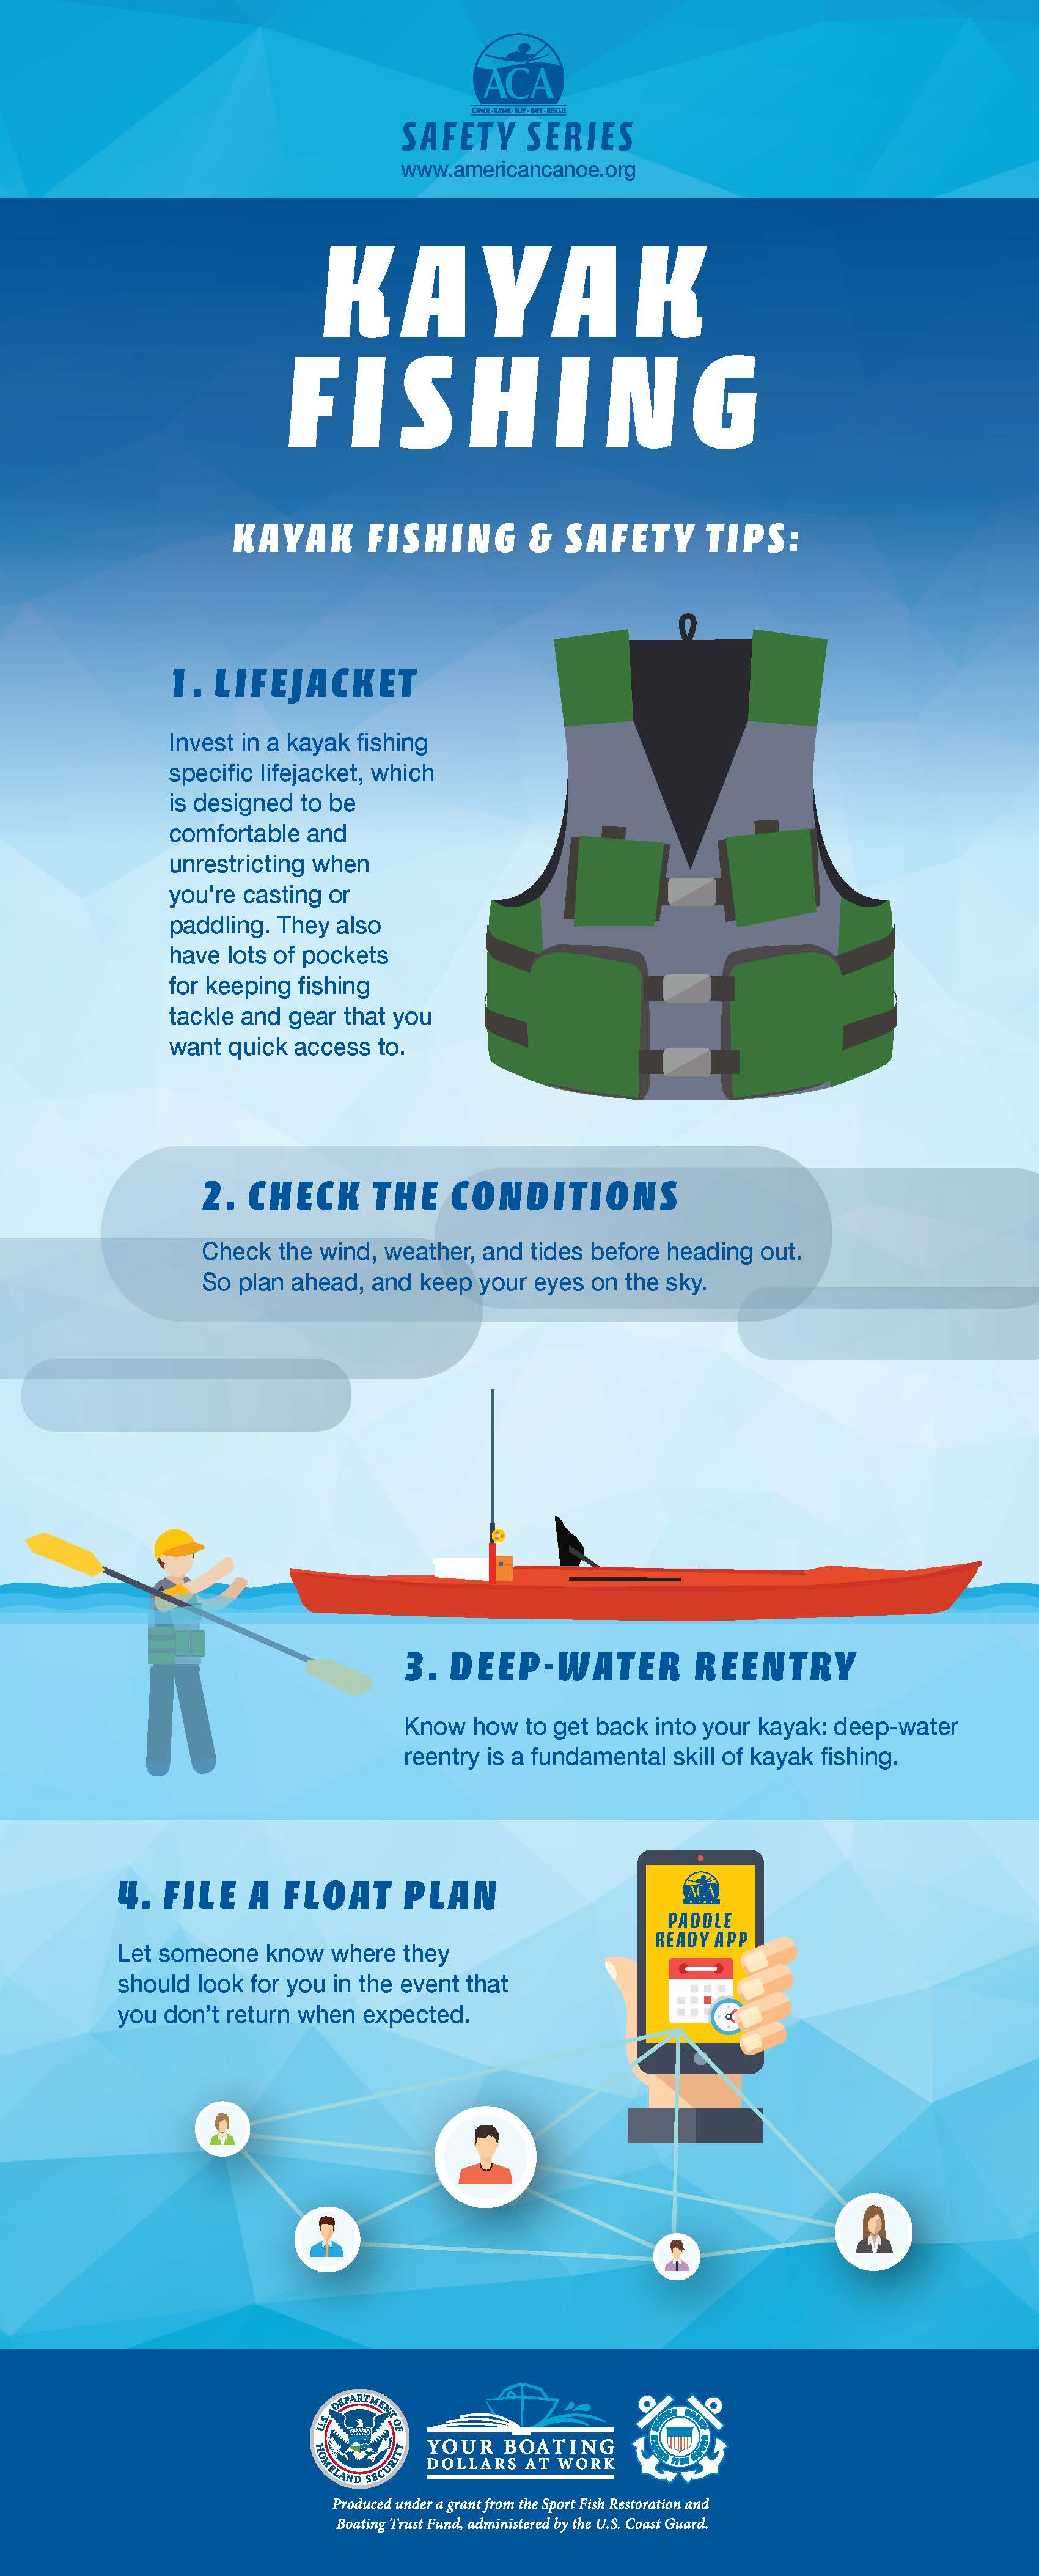 Keep Safe Paddling in Mind with the ACA Safety Series